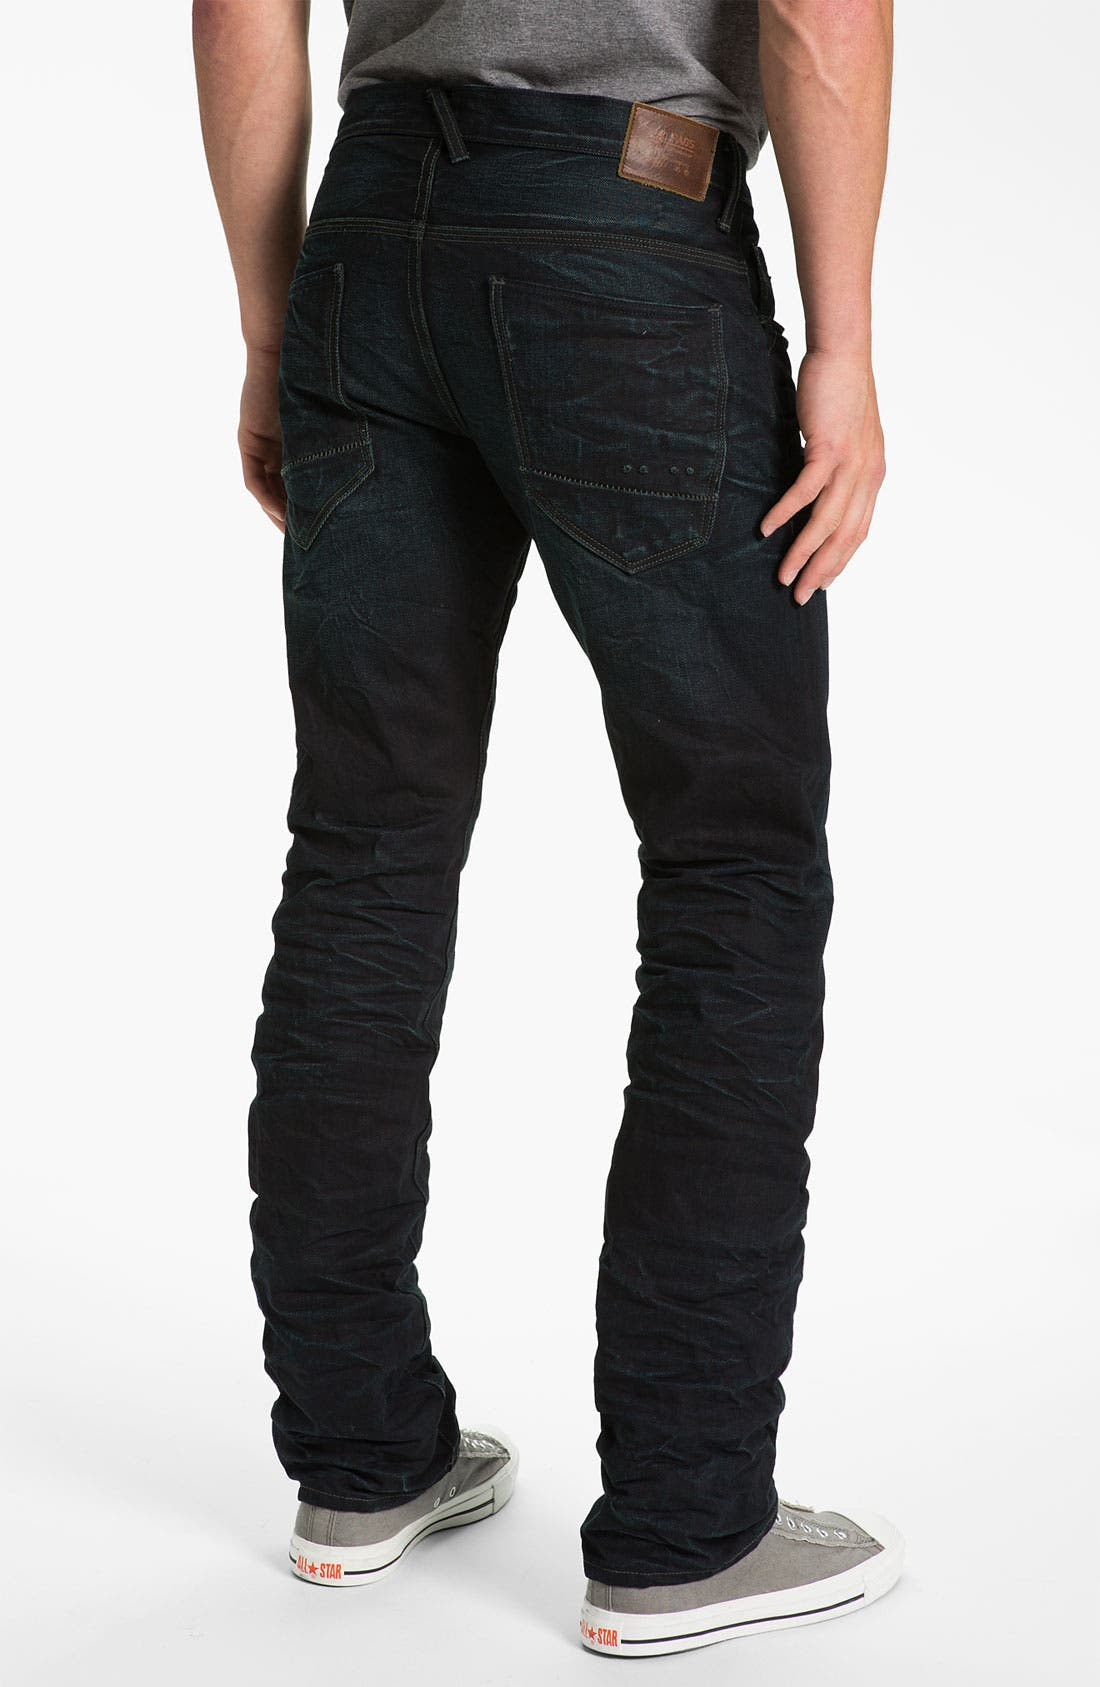 Alternate Image 1 Selected - J.C. Rags 'Alpha' Straight Leg Jeans (Used)